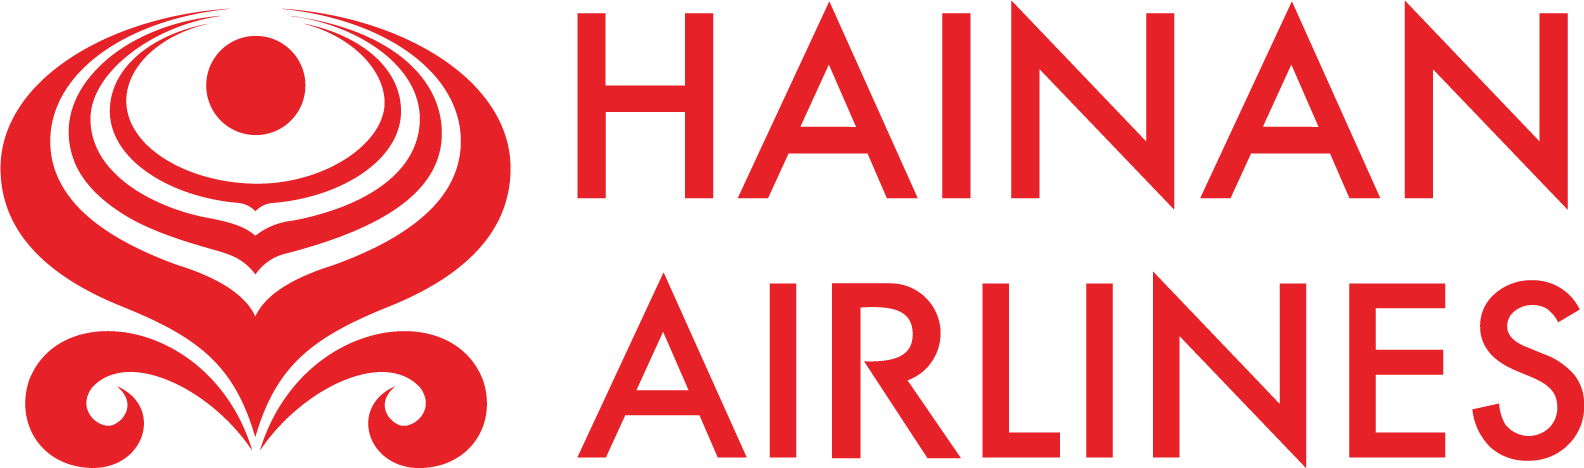 Hainan Airlines Logo png